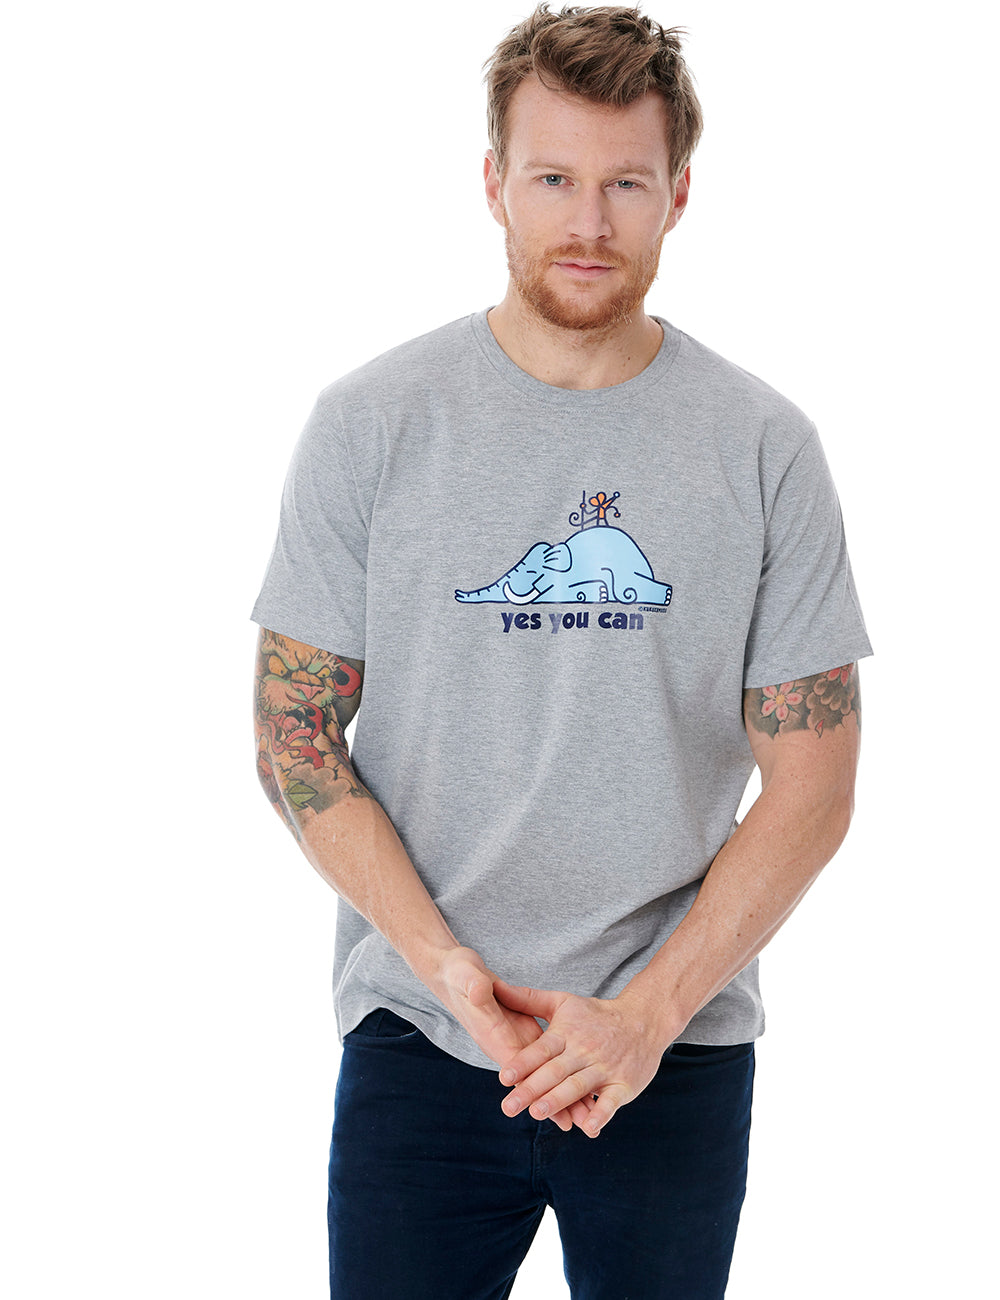 Supermouse Mens T-shirt Kukuxumusu Grey-Cheviot